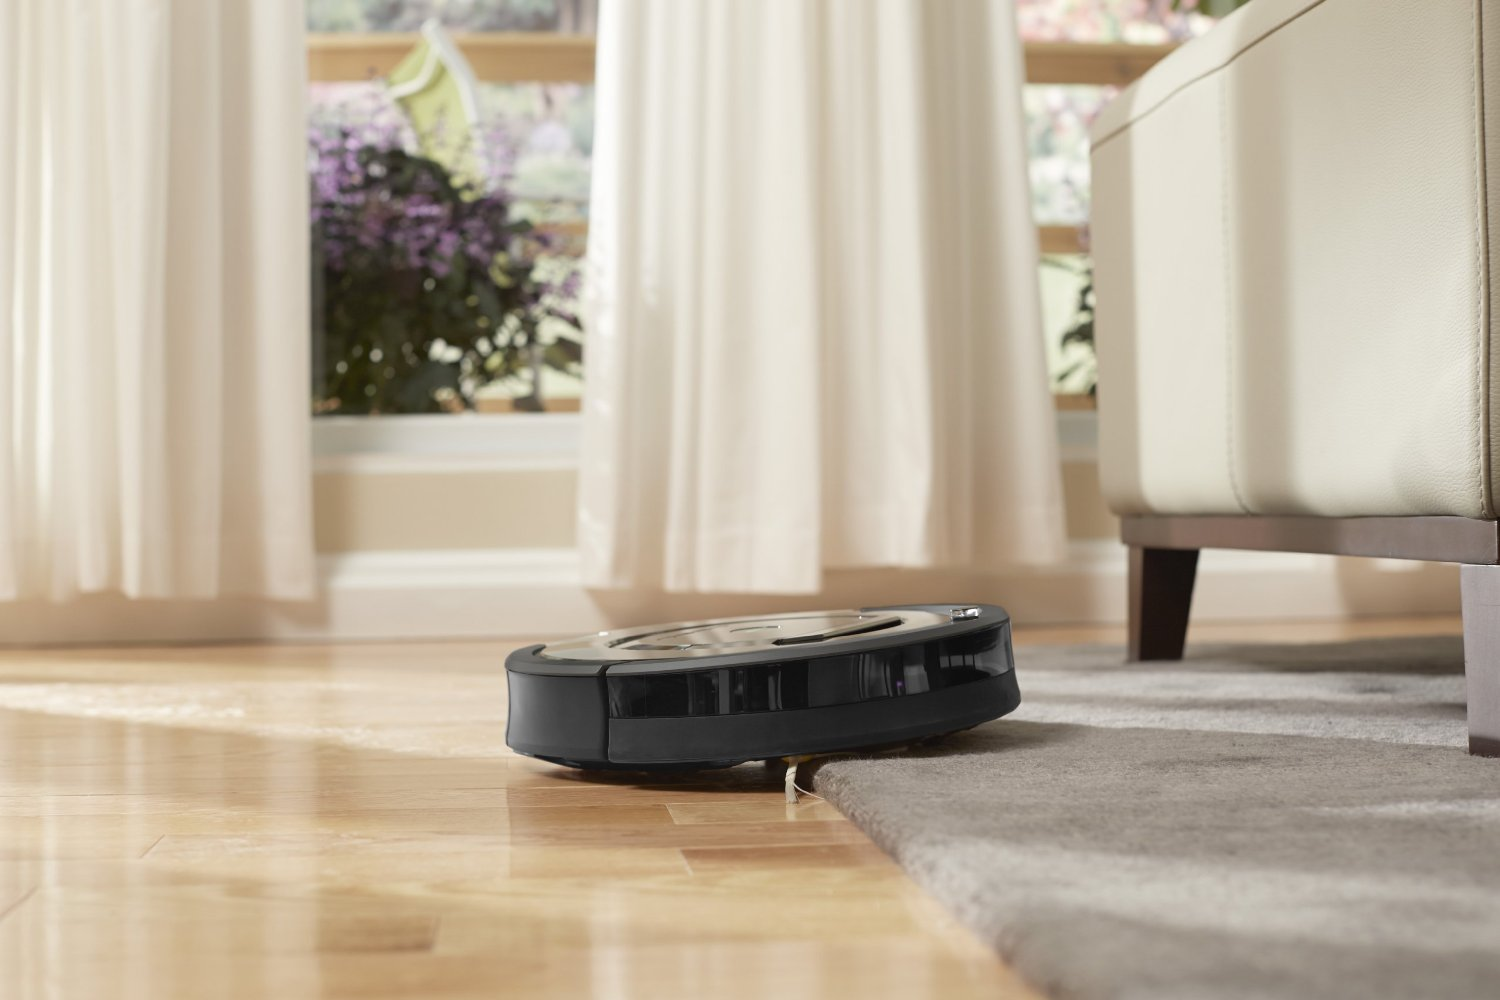 iRobot Roomba 650 vs 880: Similarities and Differences